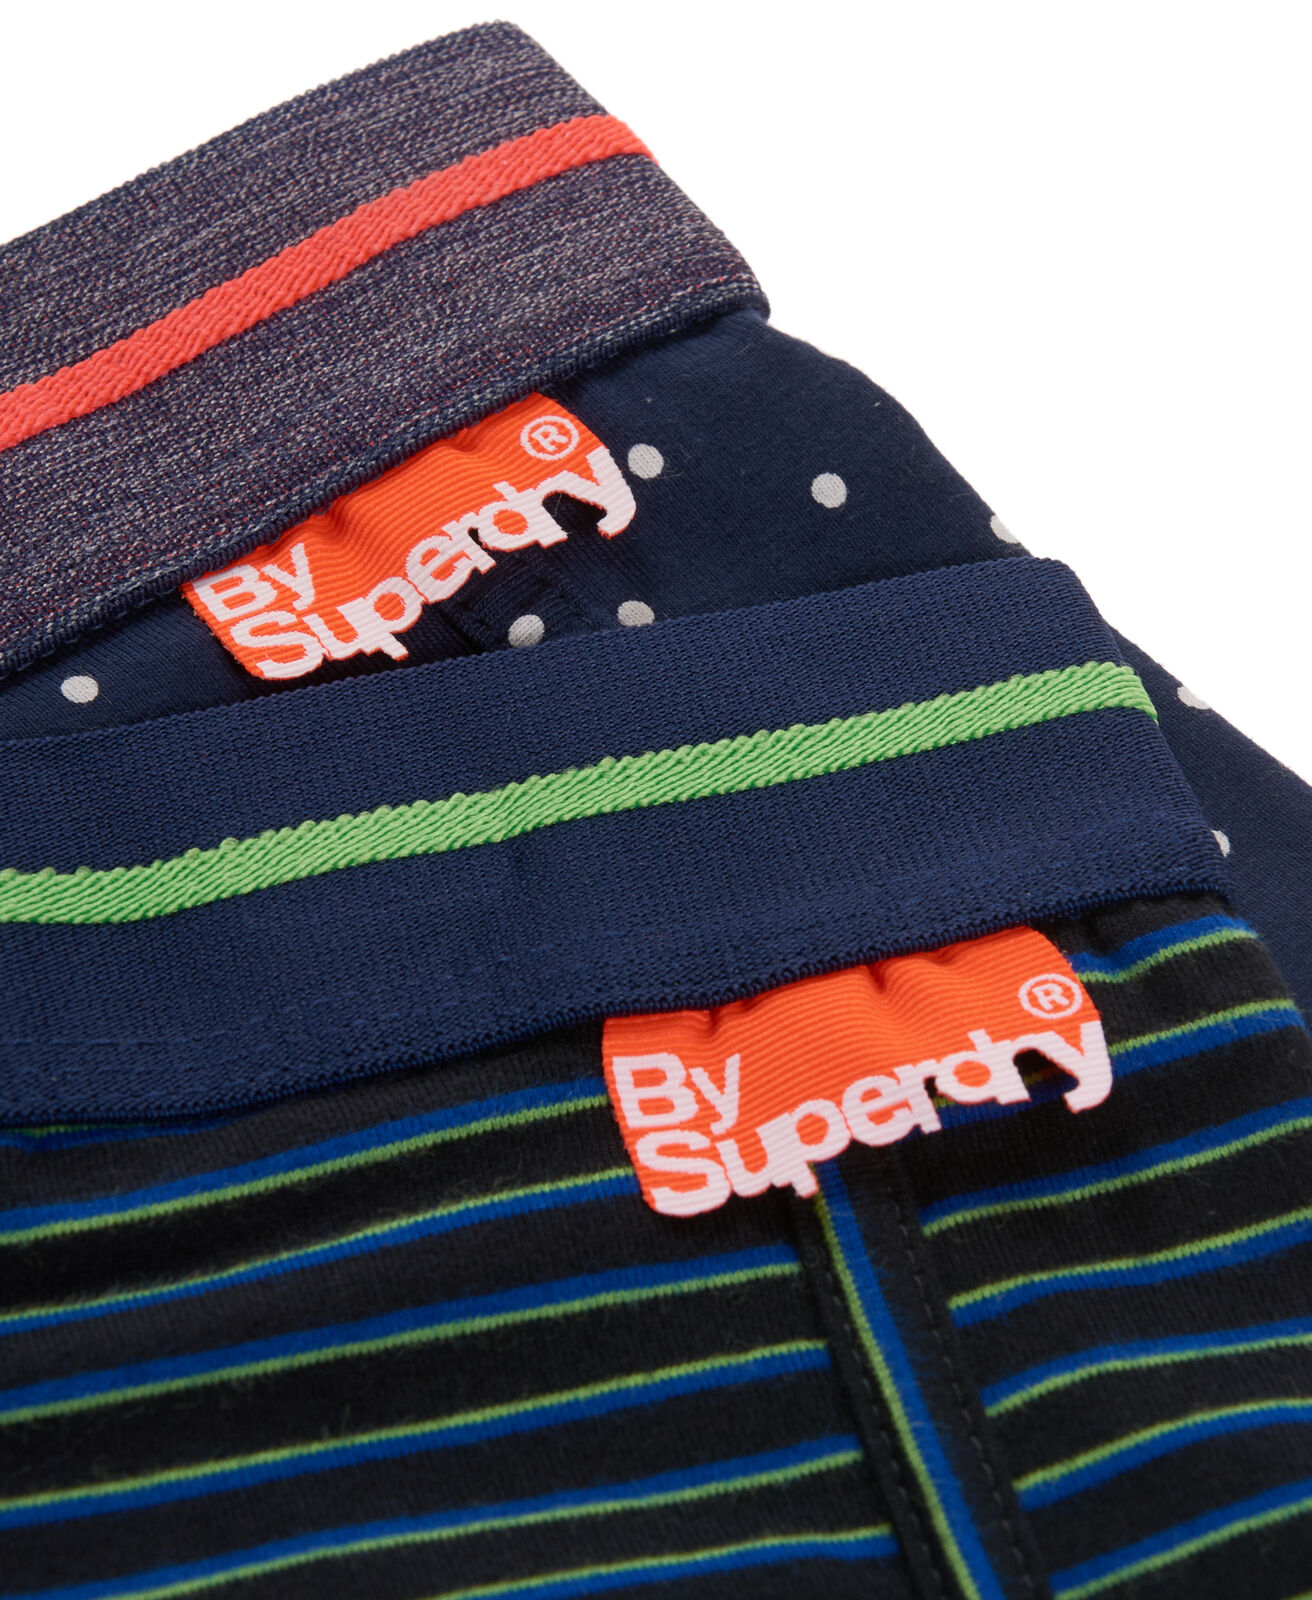 Mens-Superdry-Sport-Boxers-Double-Pack-Newport-Stripe-Green thumbnail 8